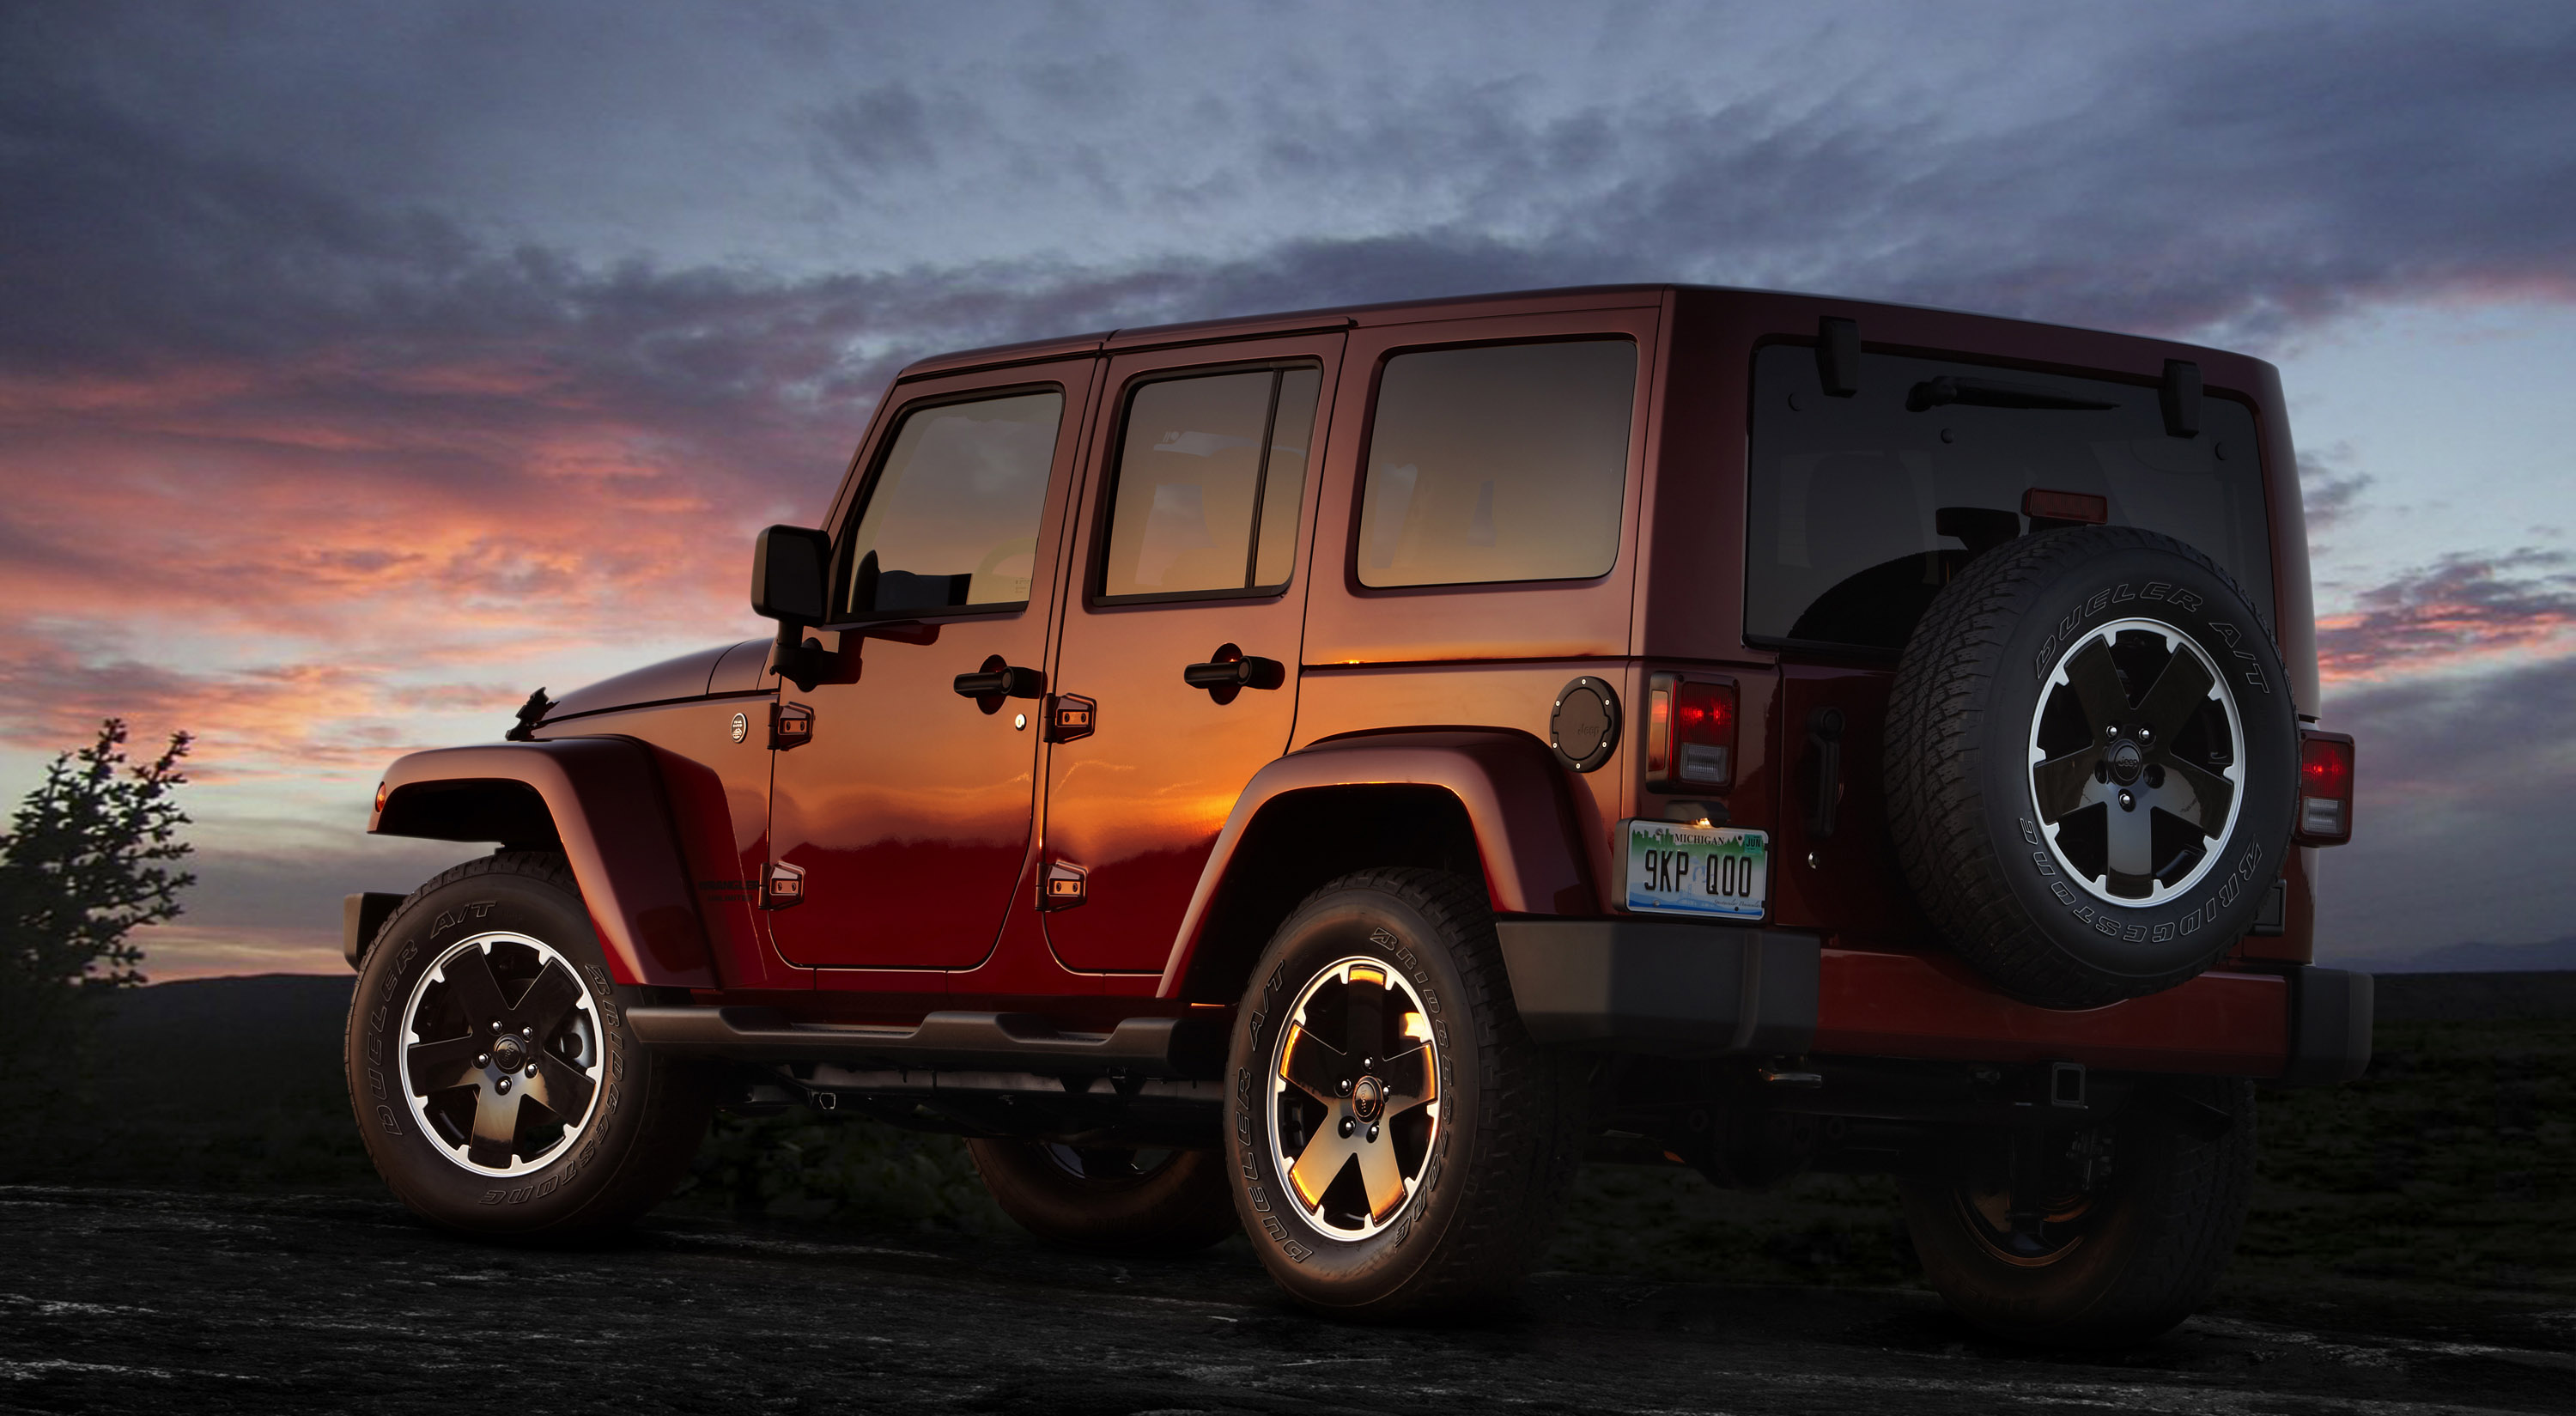 2012 Jeep Wrangler Unlimited Altitude: The New Limited-edition Model From Jeep